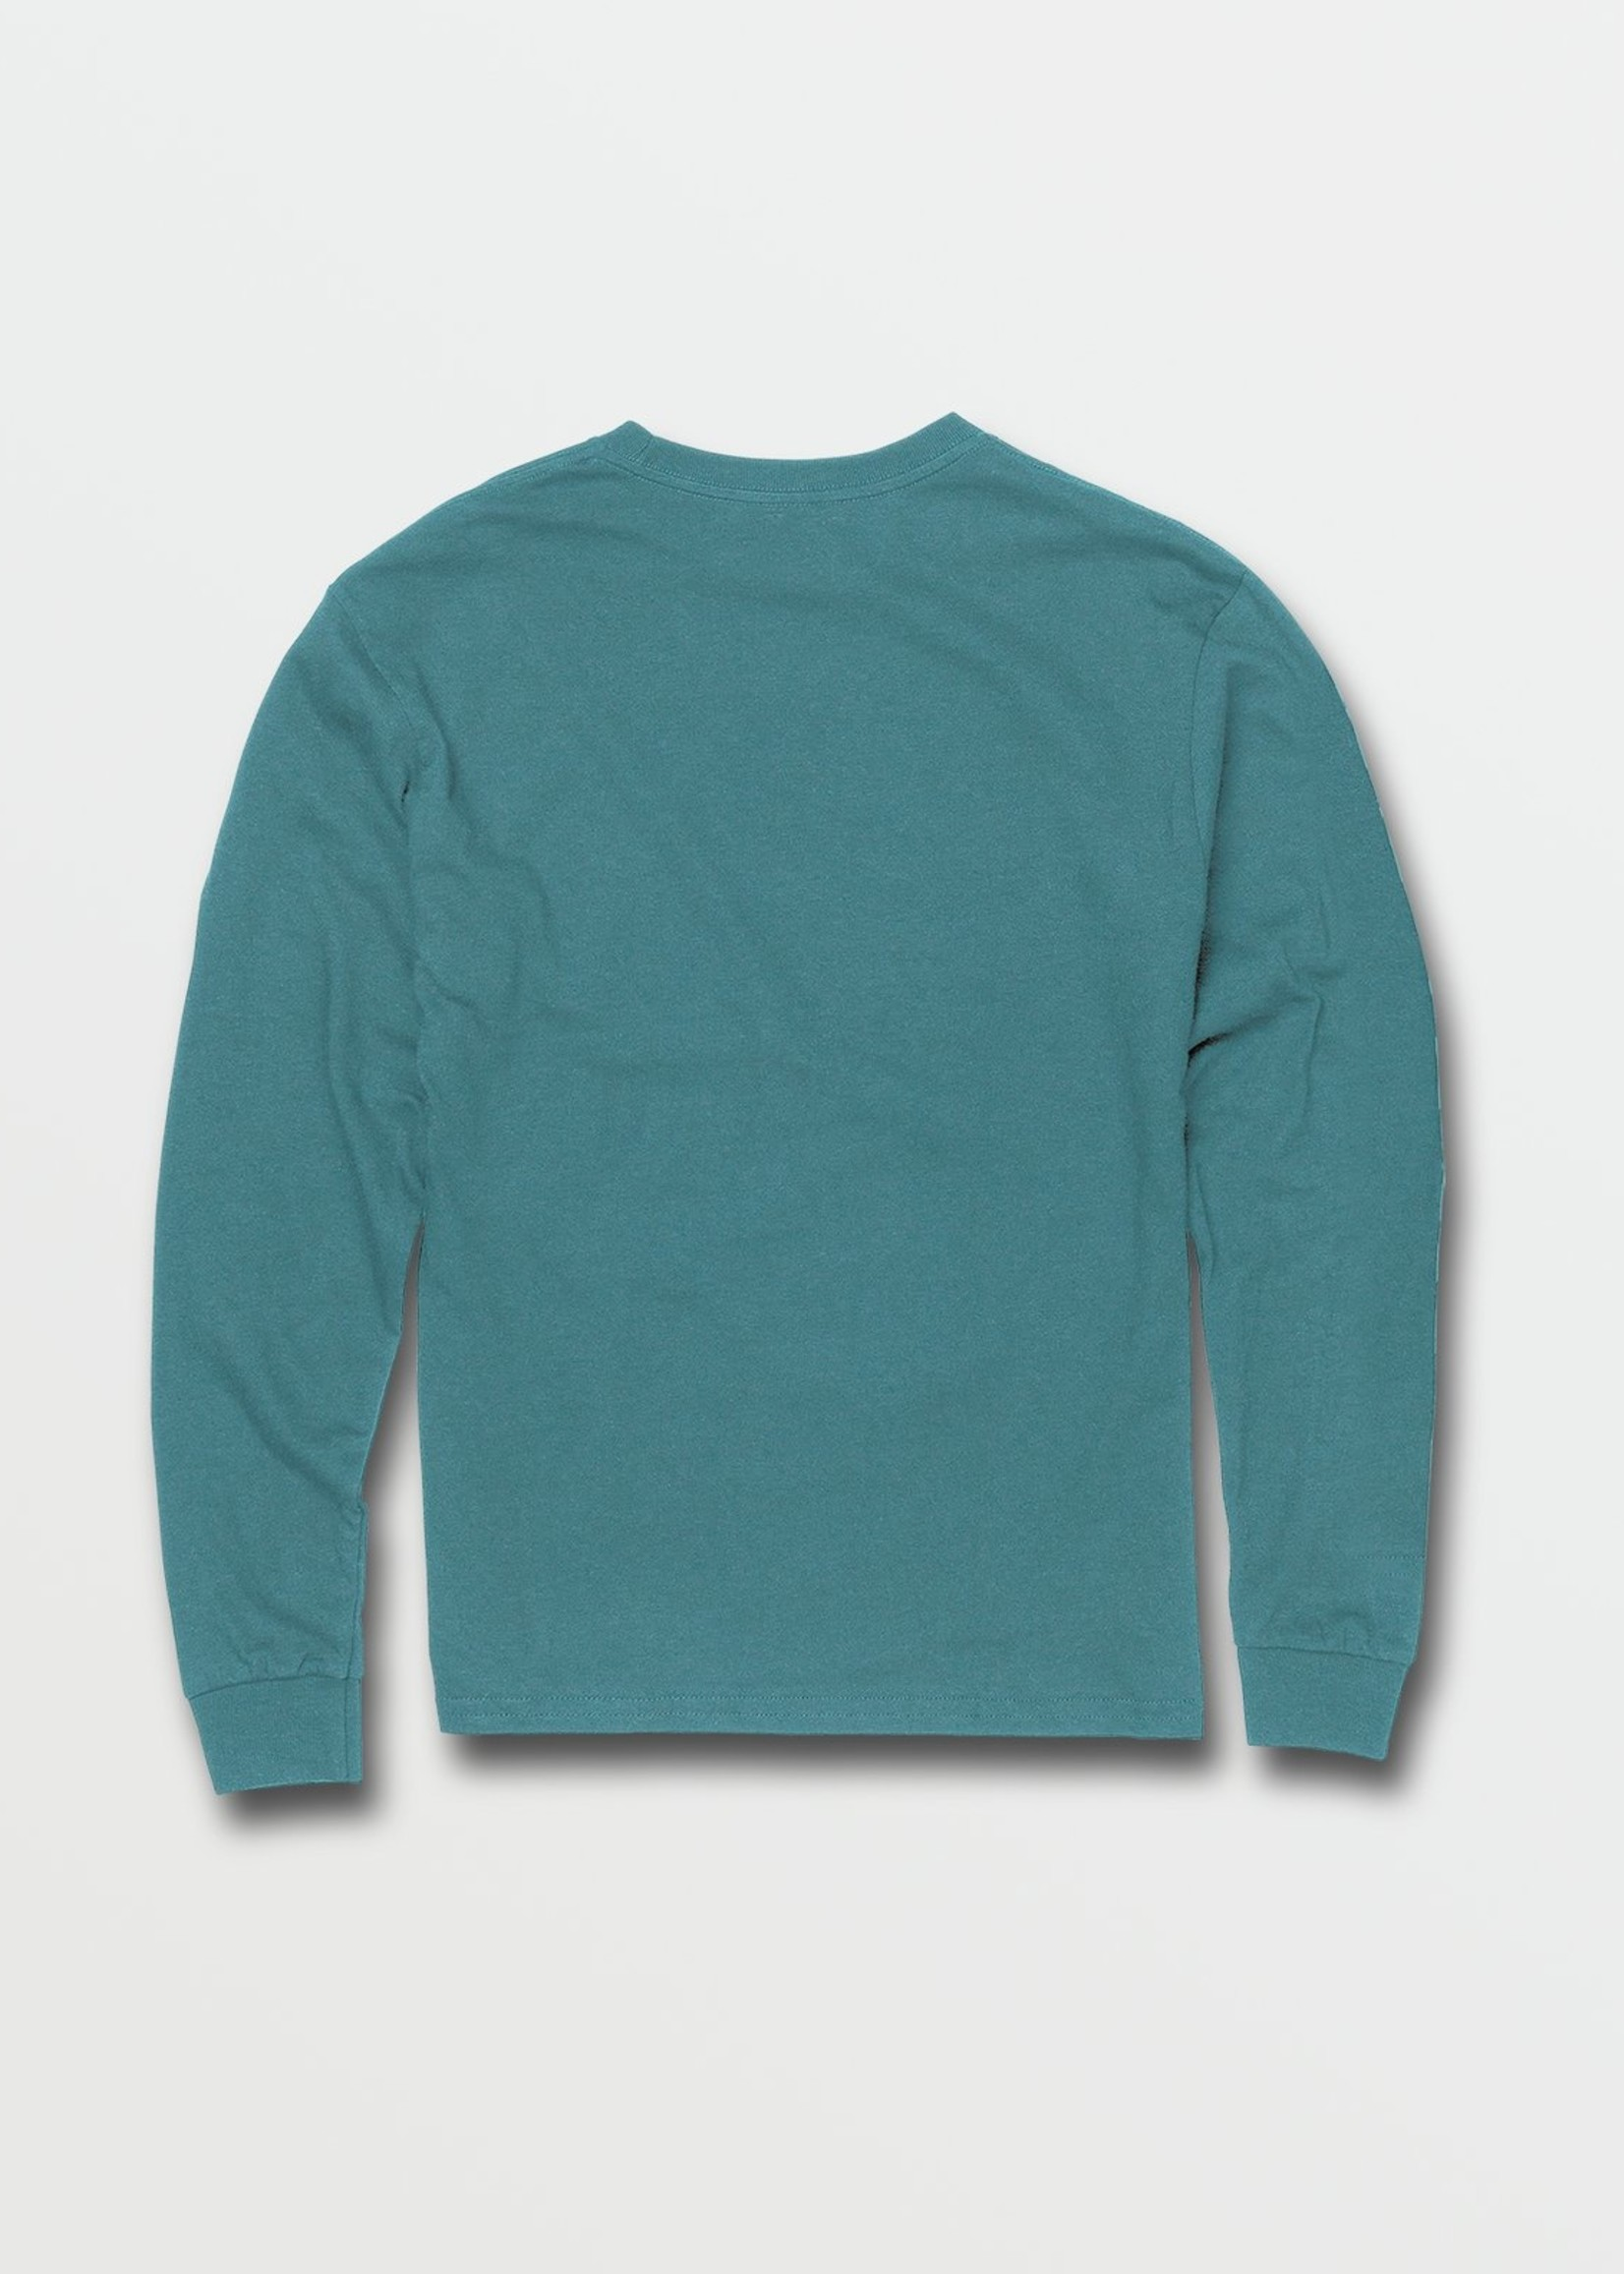 Volcom ICONIC STONE L/S TEE YOUTH Y3632100